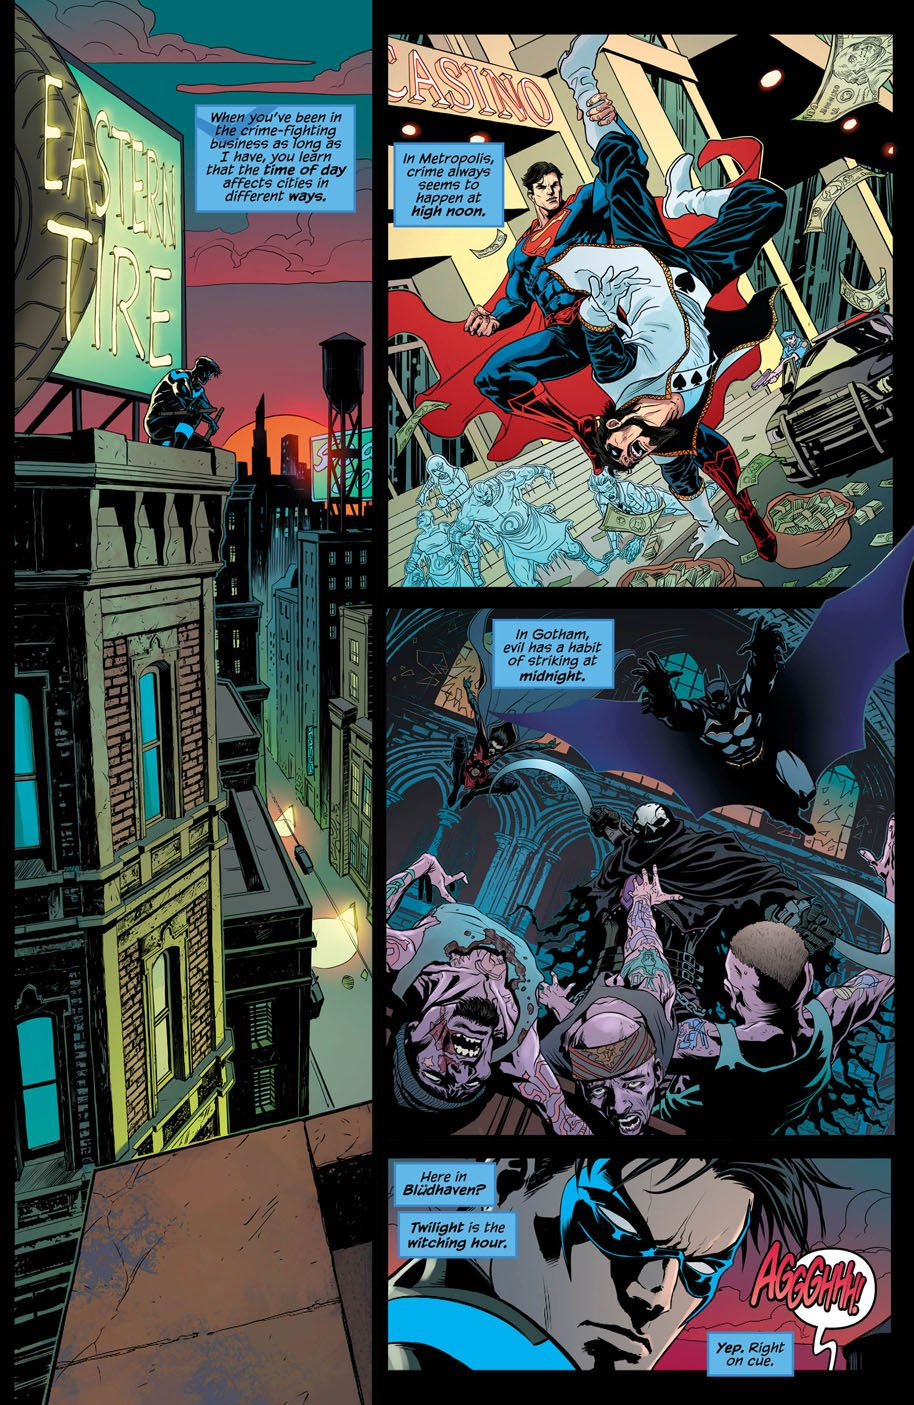 Nightwing 21 page 1